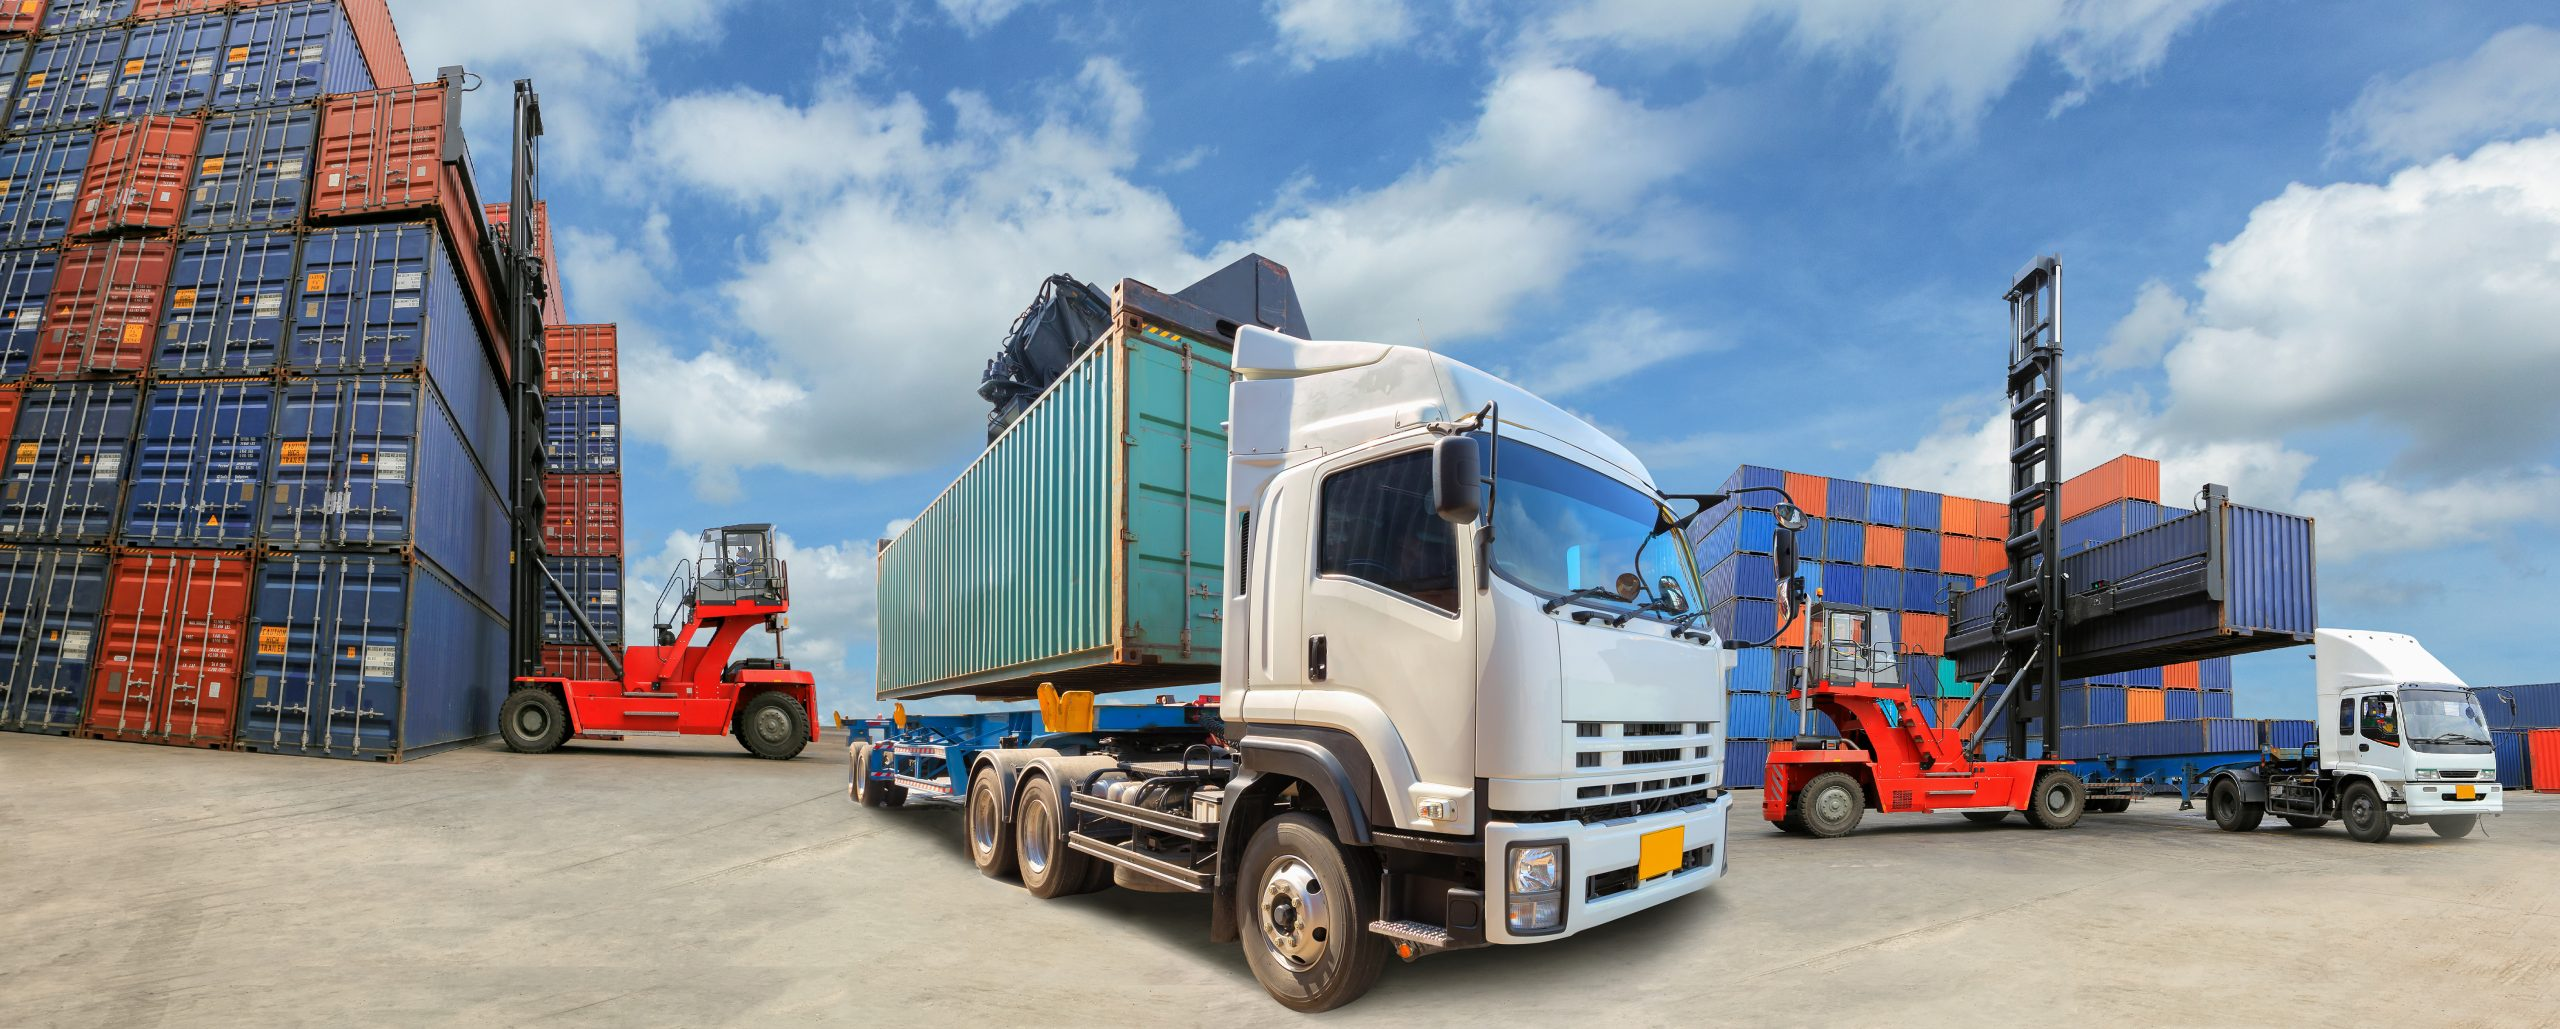 Aviatrix Accountancy - Transport and Logistics - Truck with Industrial Container Cargo for Logistic Import Export at yard.